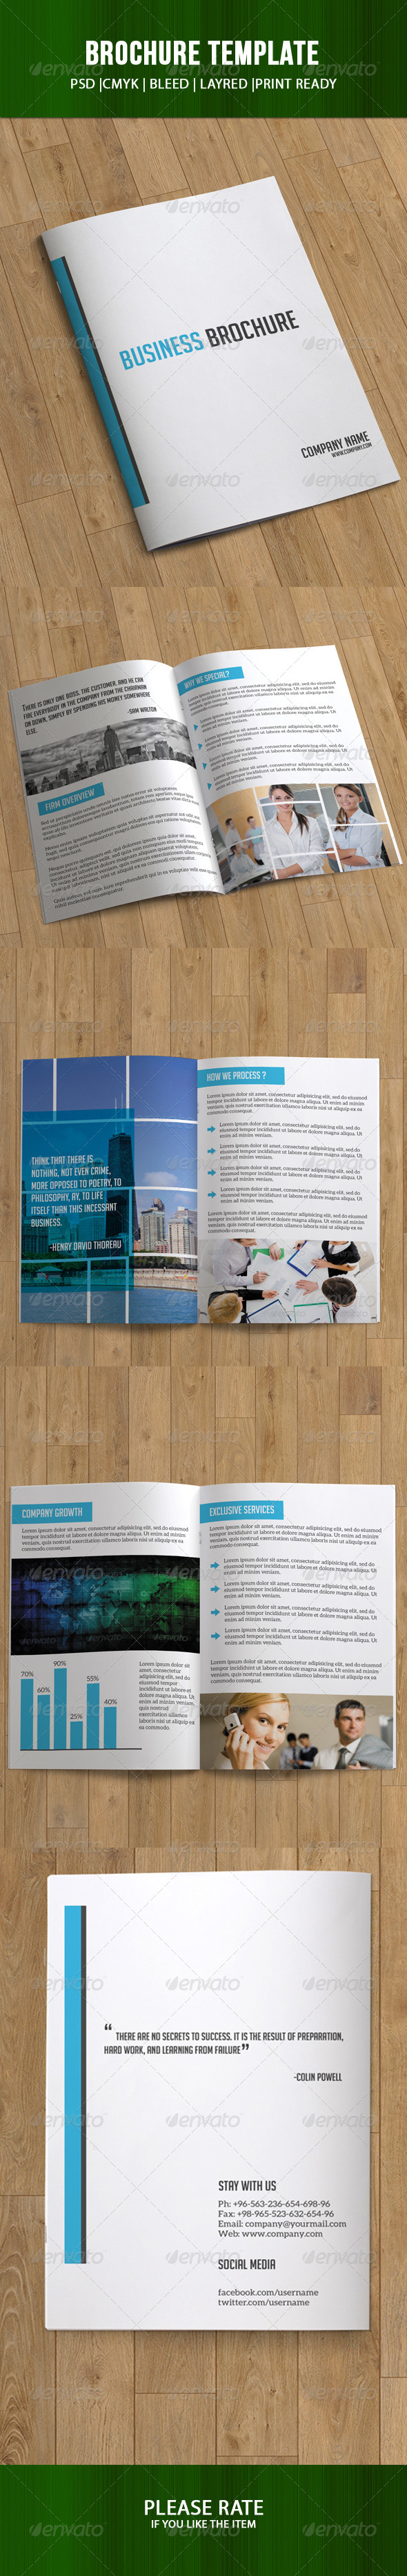 GraphicRiver Bifold Business Brochure-8 Pages 7294987